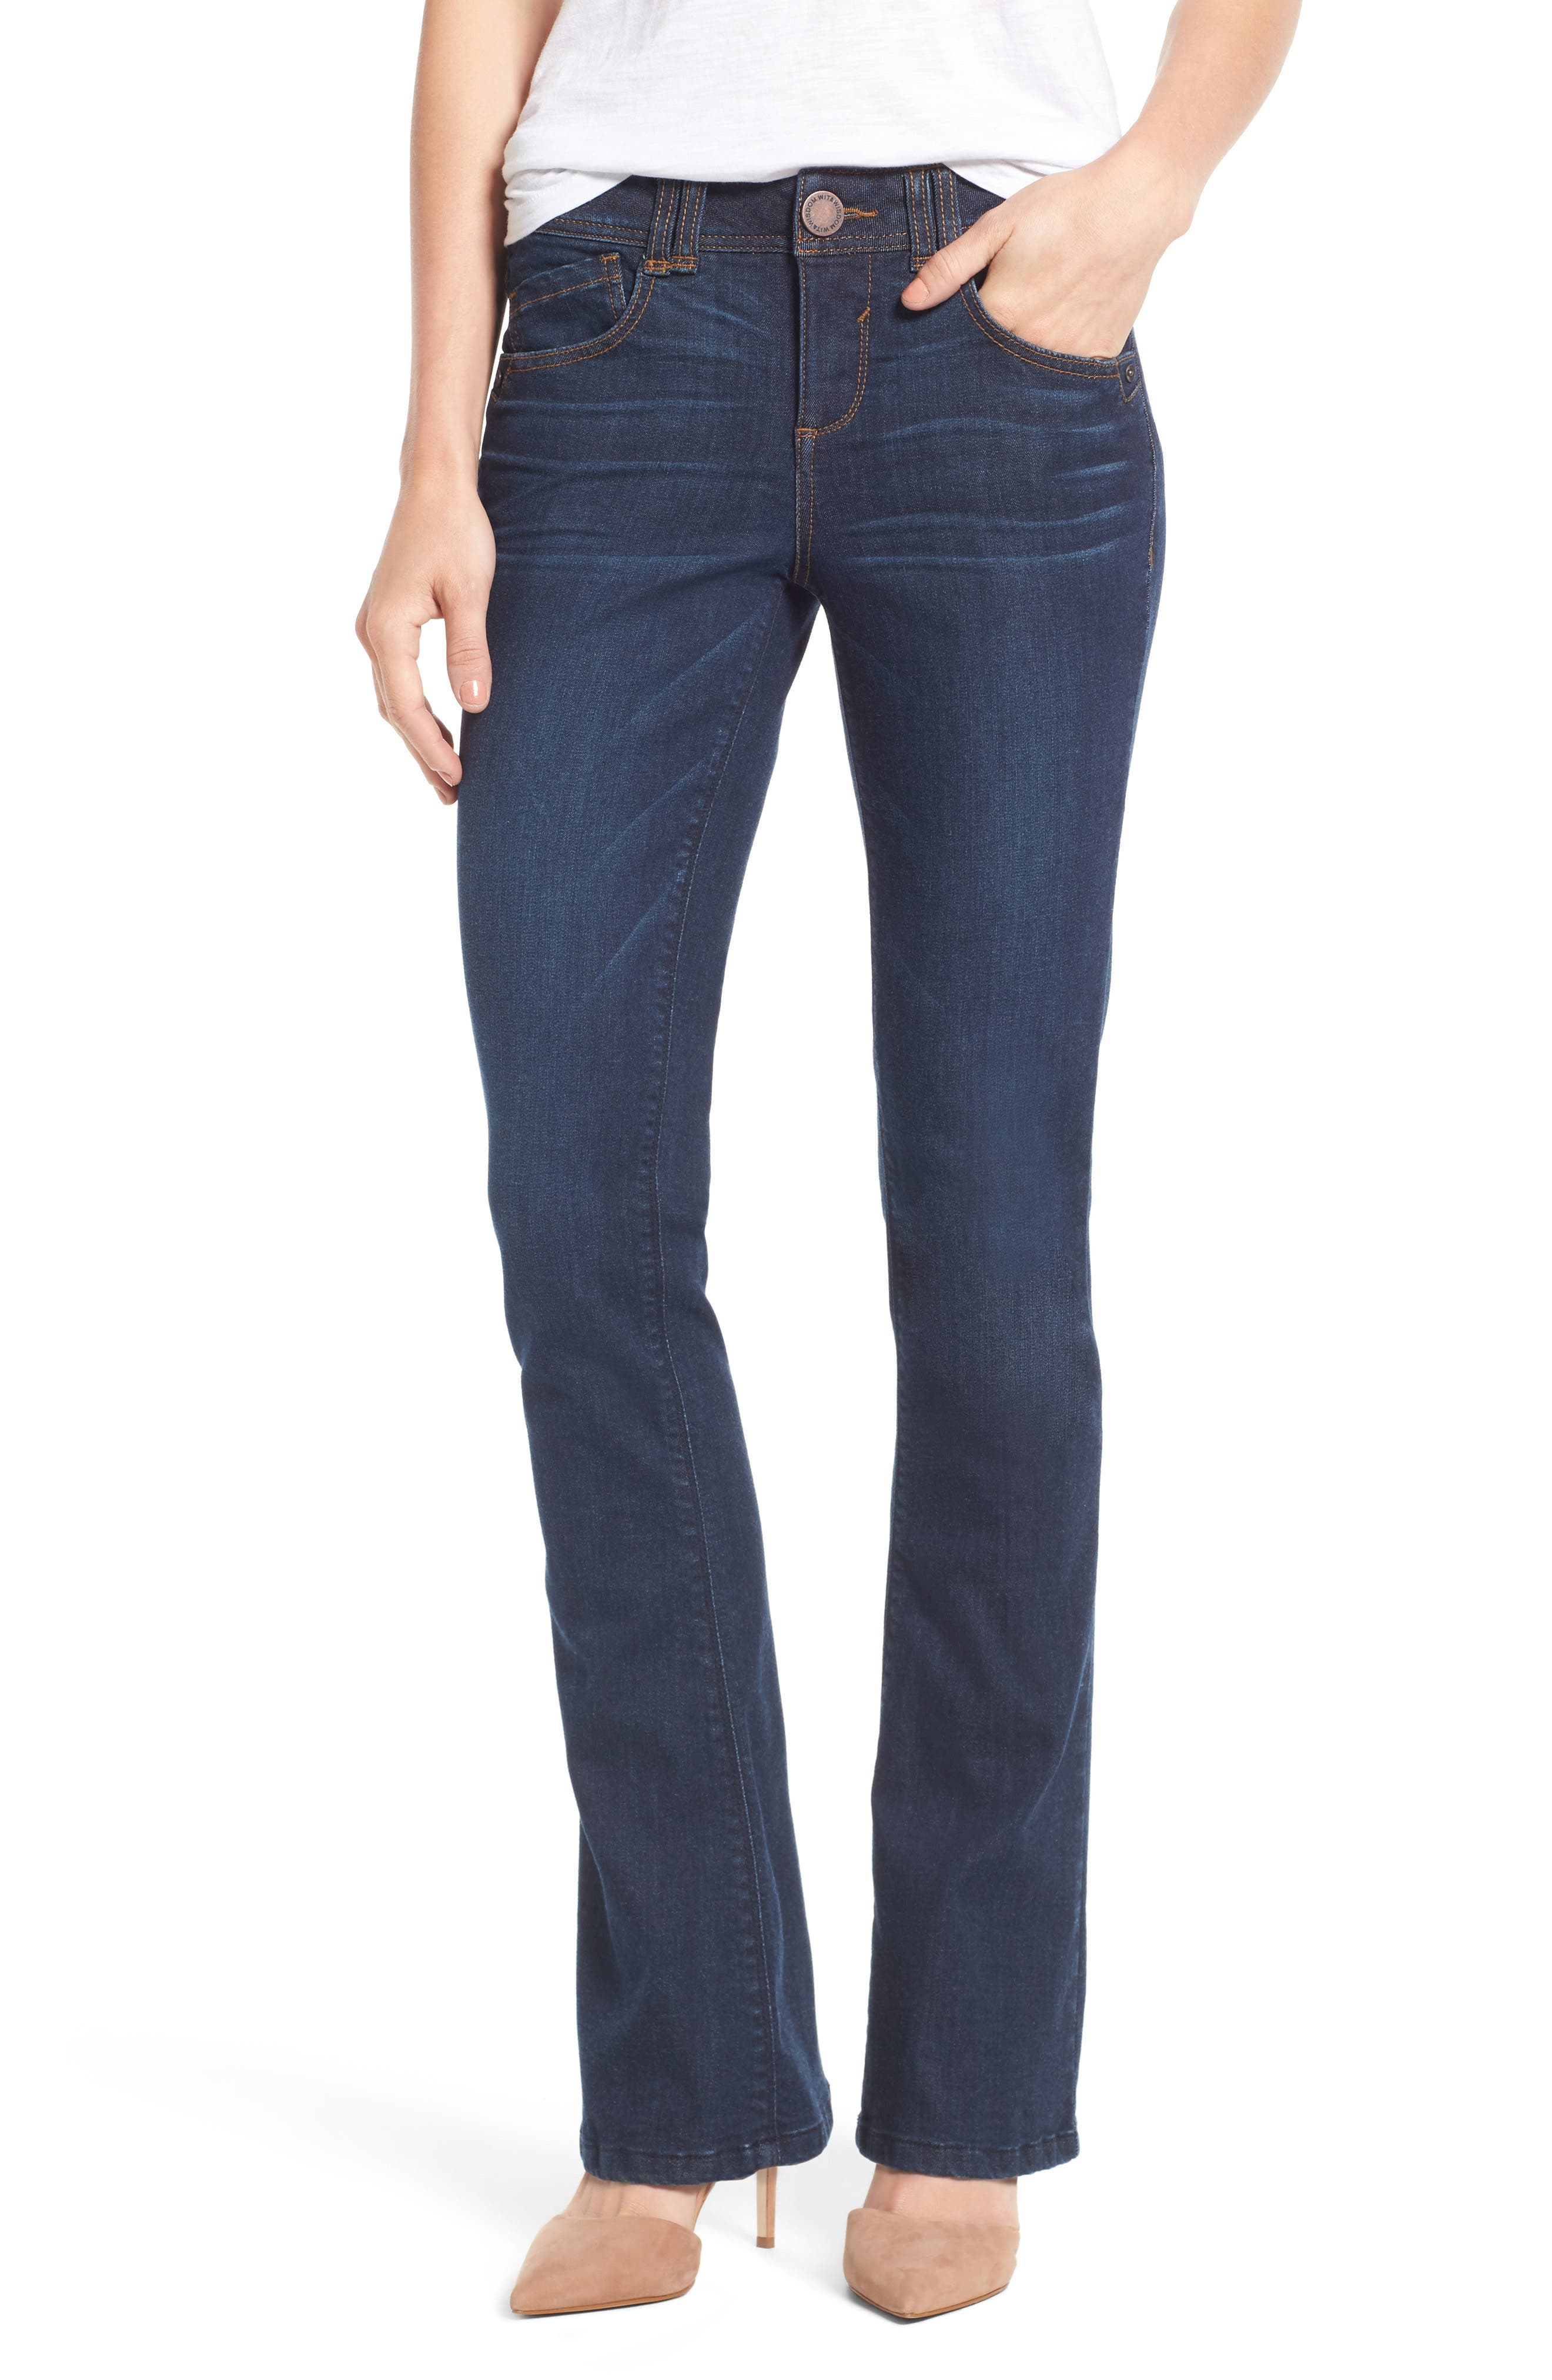 Main Image - Wit & Wisdom Ab-solution Itty Bitty Bootcut Jeans (Regular & Petite) (Nordstrom Exclusive)